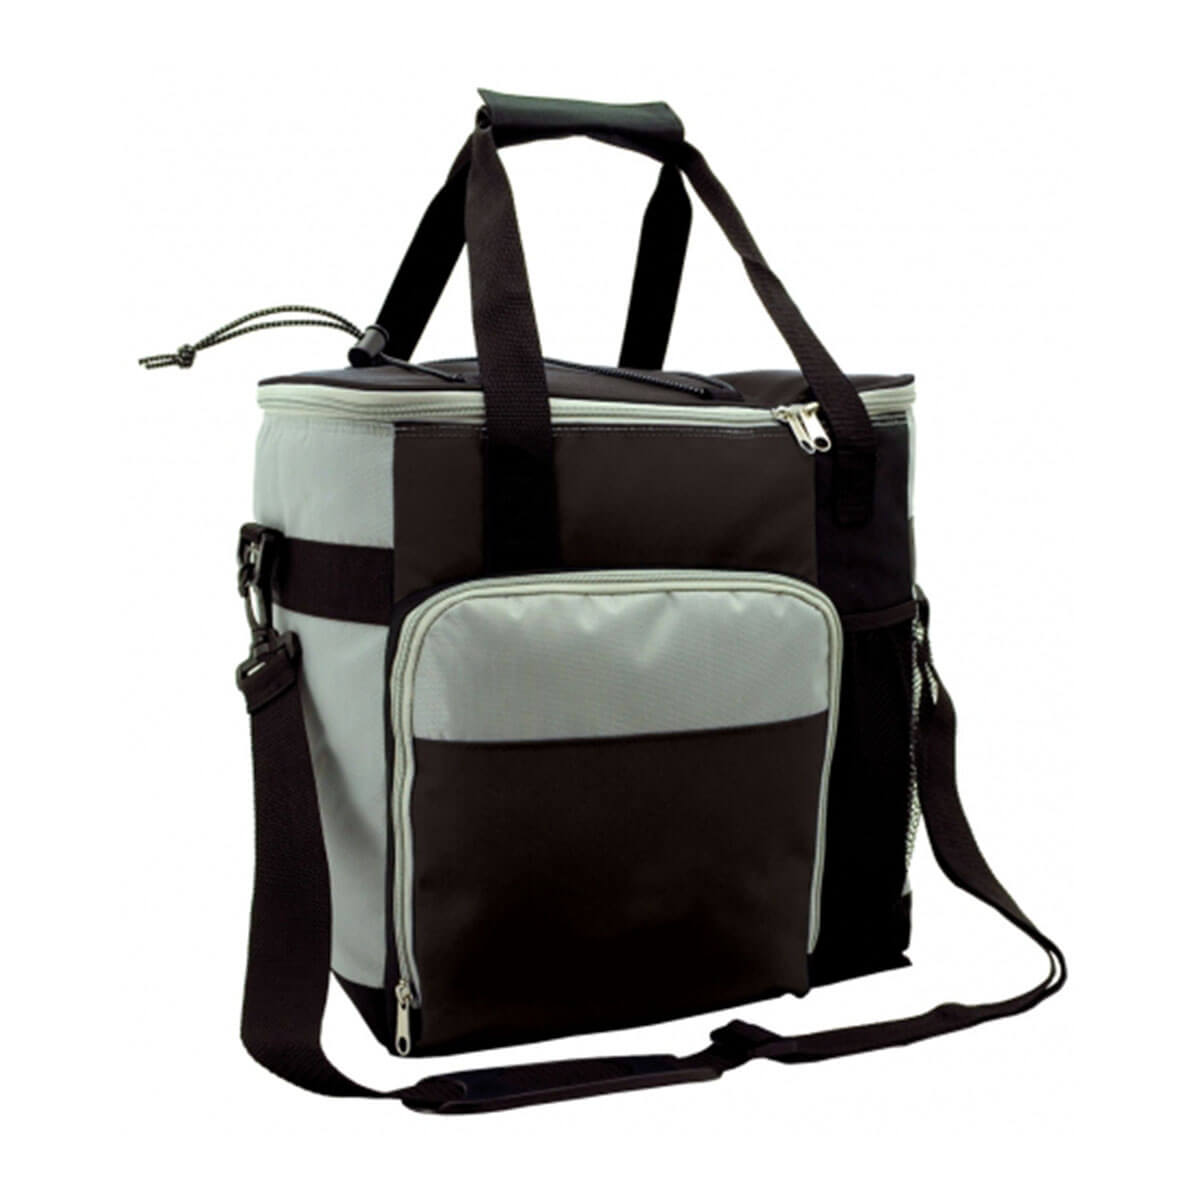 Arctic Cooler Bag-Black / Grey / Black